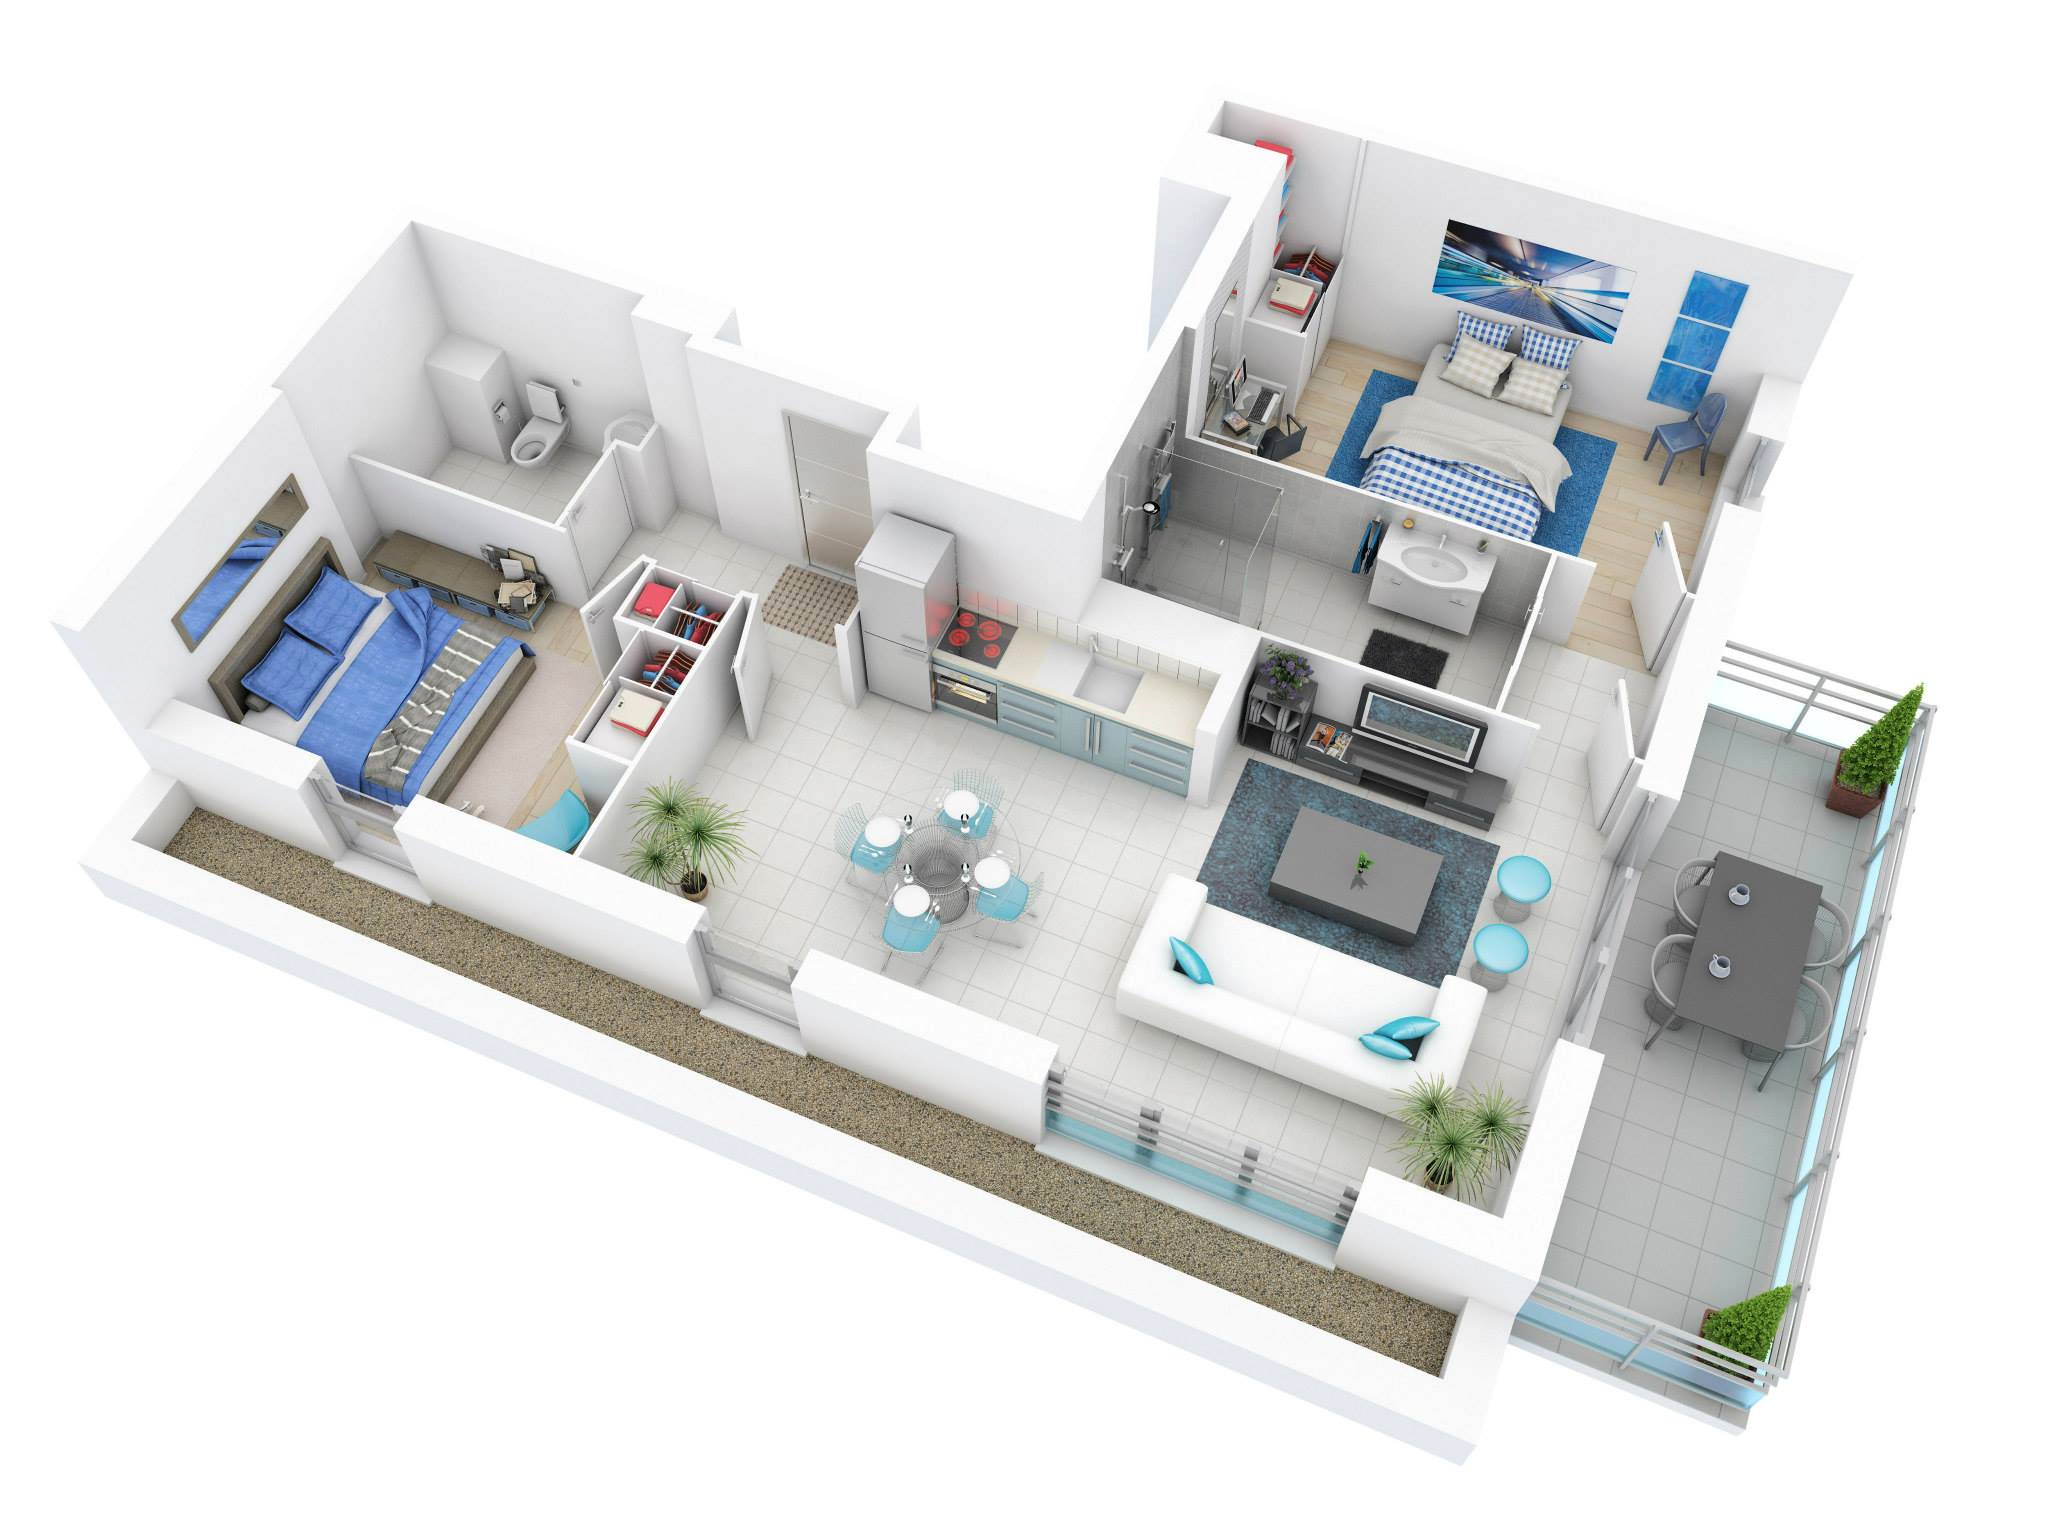 25 More 2 Bedroom 3d Floor Plans 7. Office Interior Design. Interior Design  Schools